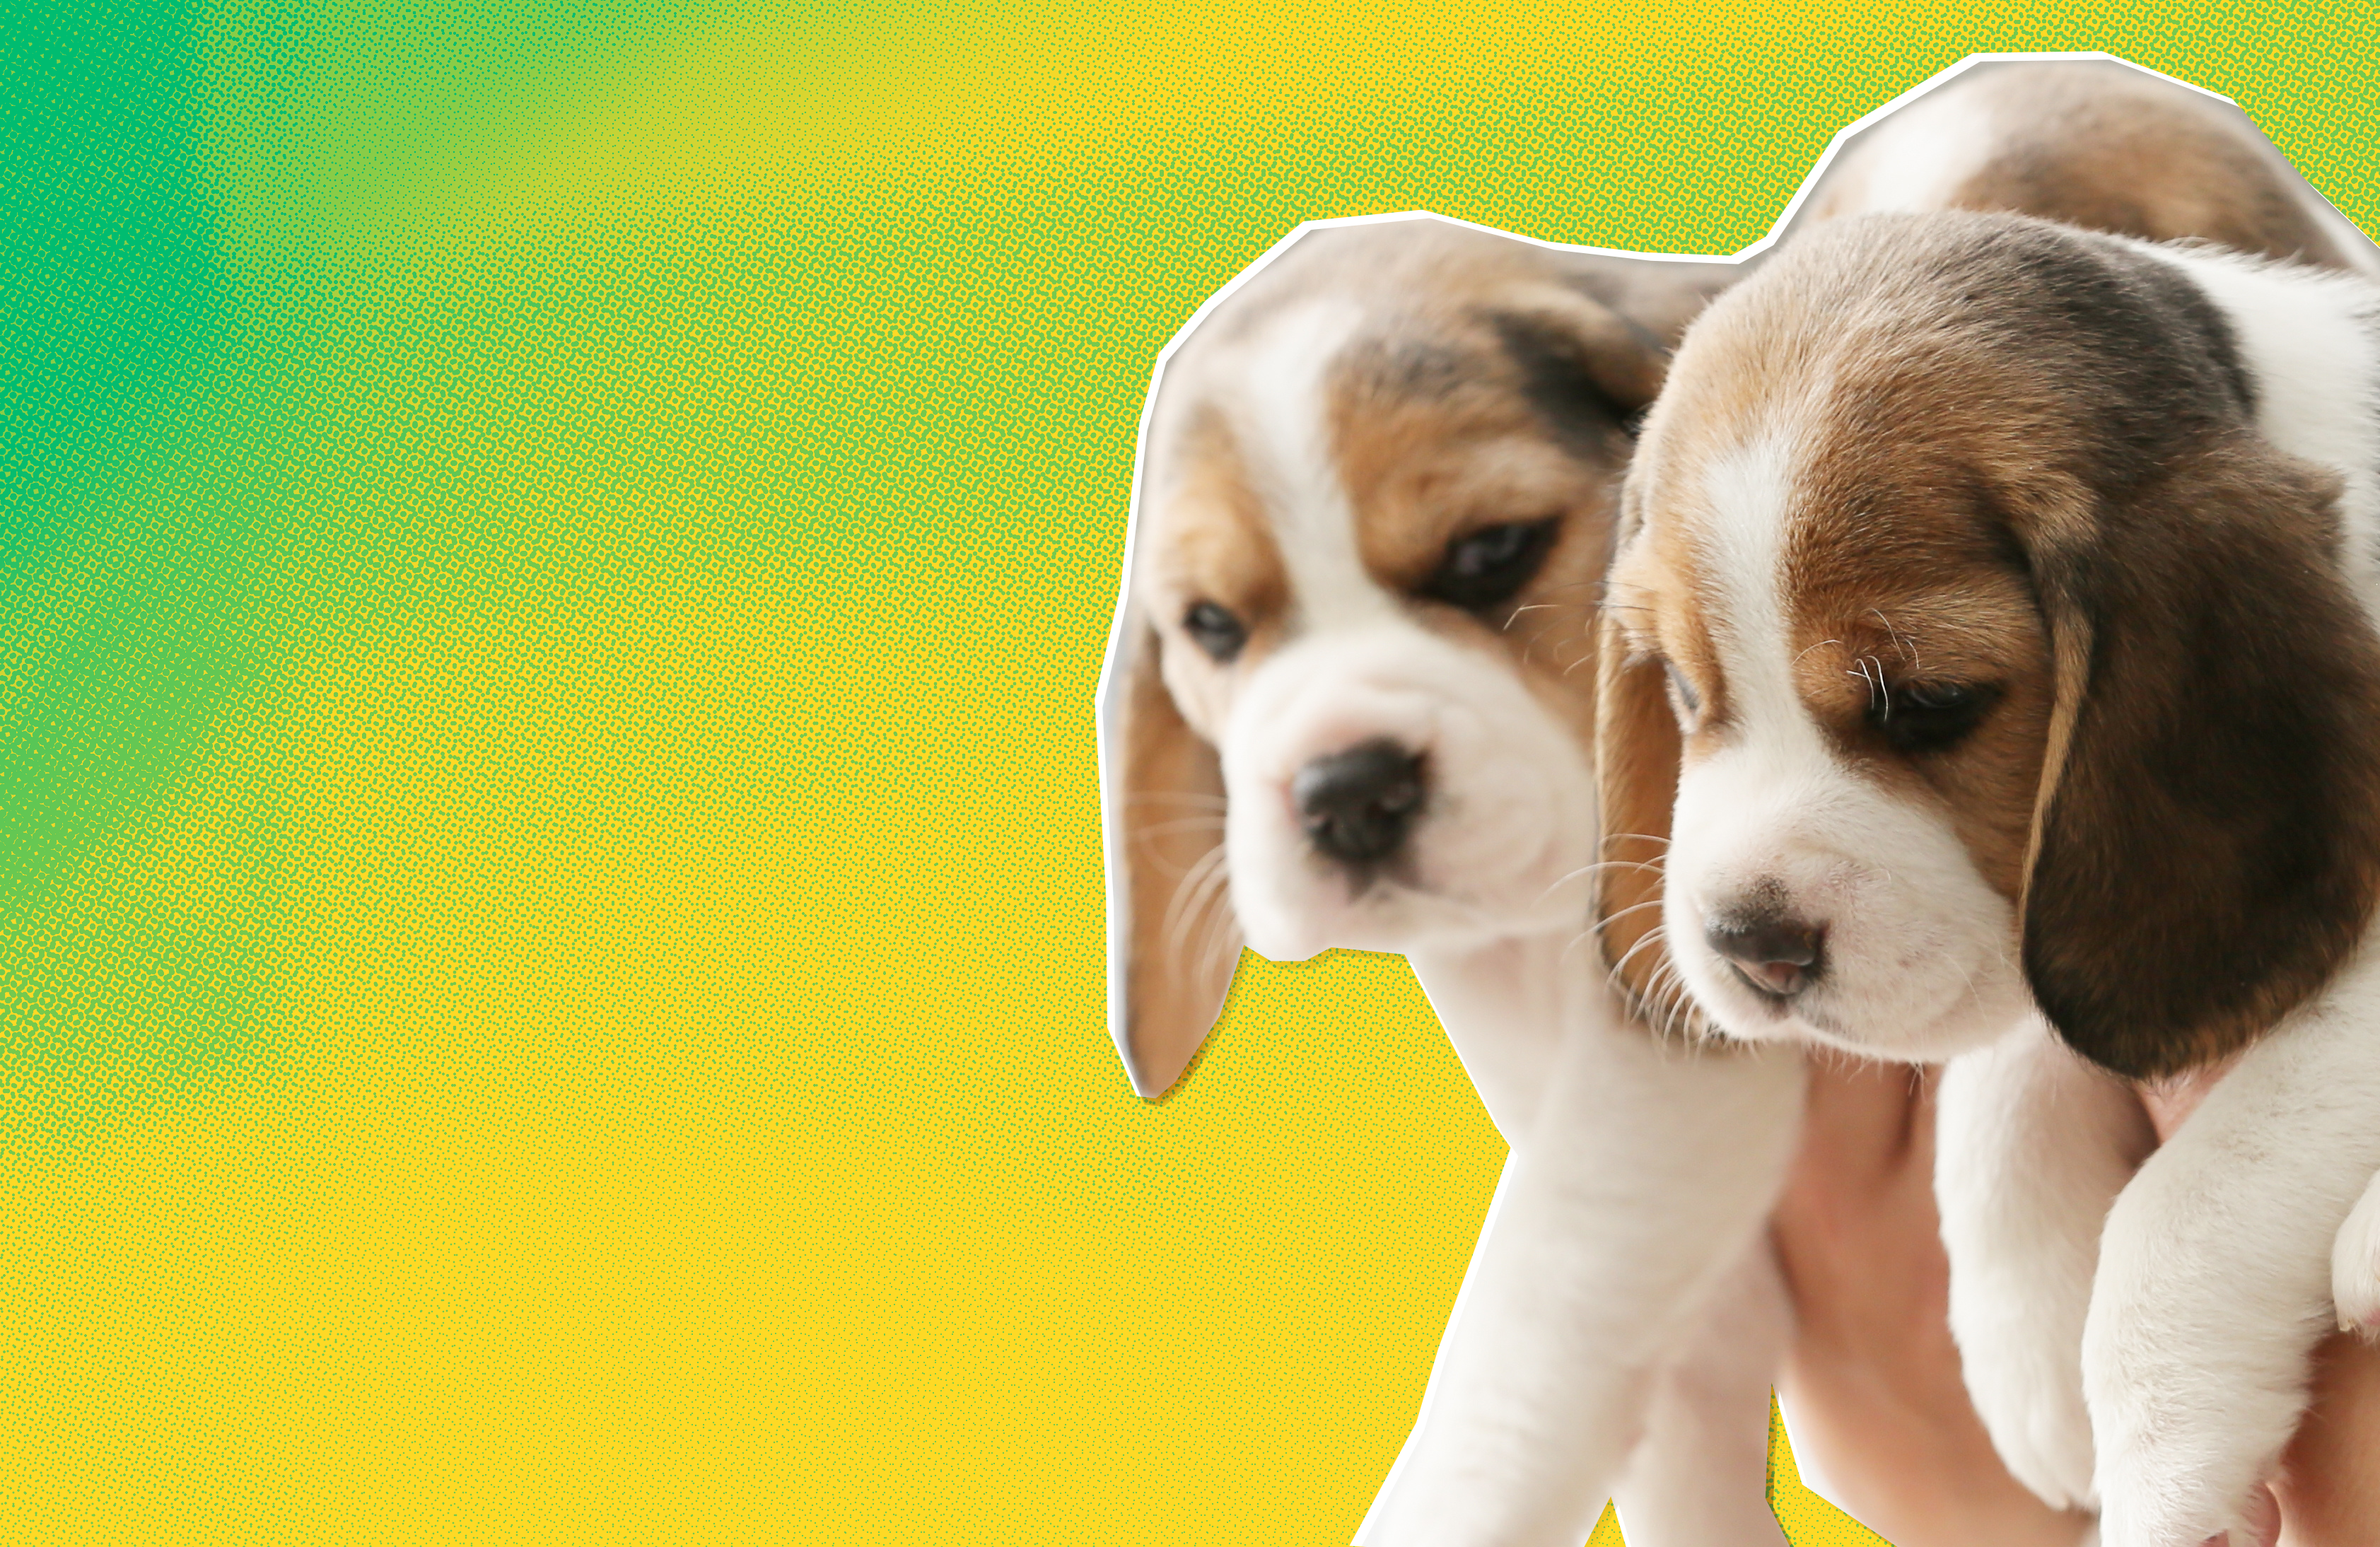 Beagle puppies silhouetted against a stylized green and yellow background